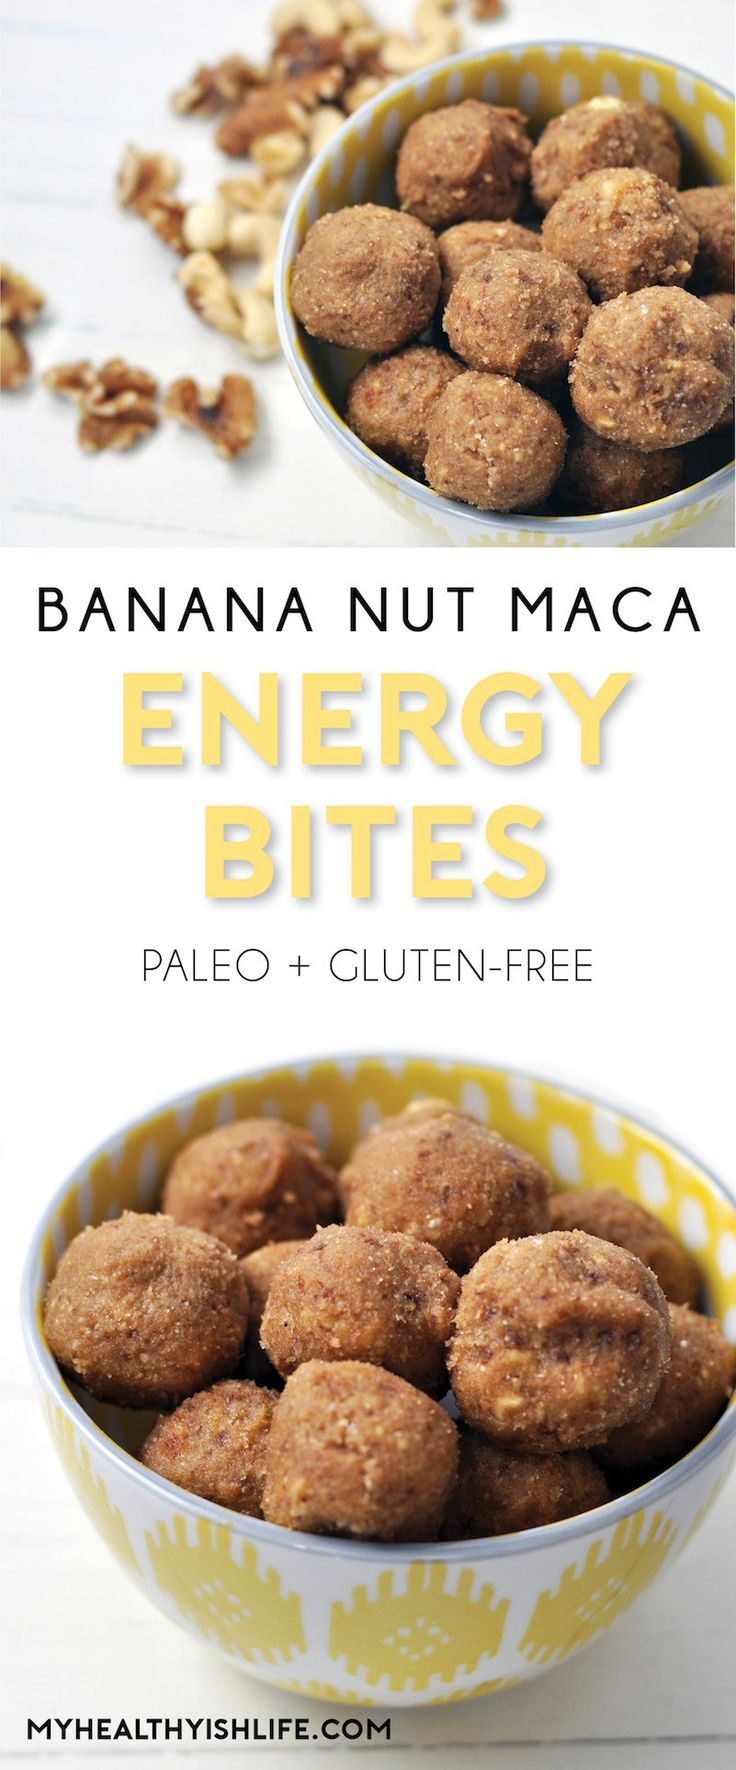 Need a new no-bake snack? These Banana Nut Maca Energy Bites will give you an extra boost to power through your day. Paleo, gluten-free, filled with fruit, nuts and sweetened with dates and honey.